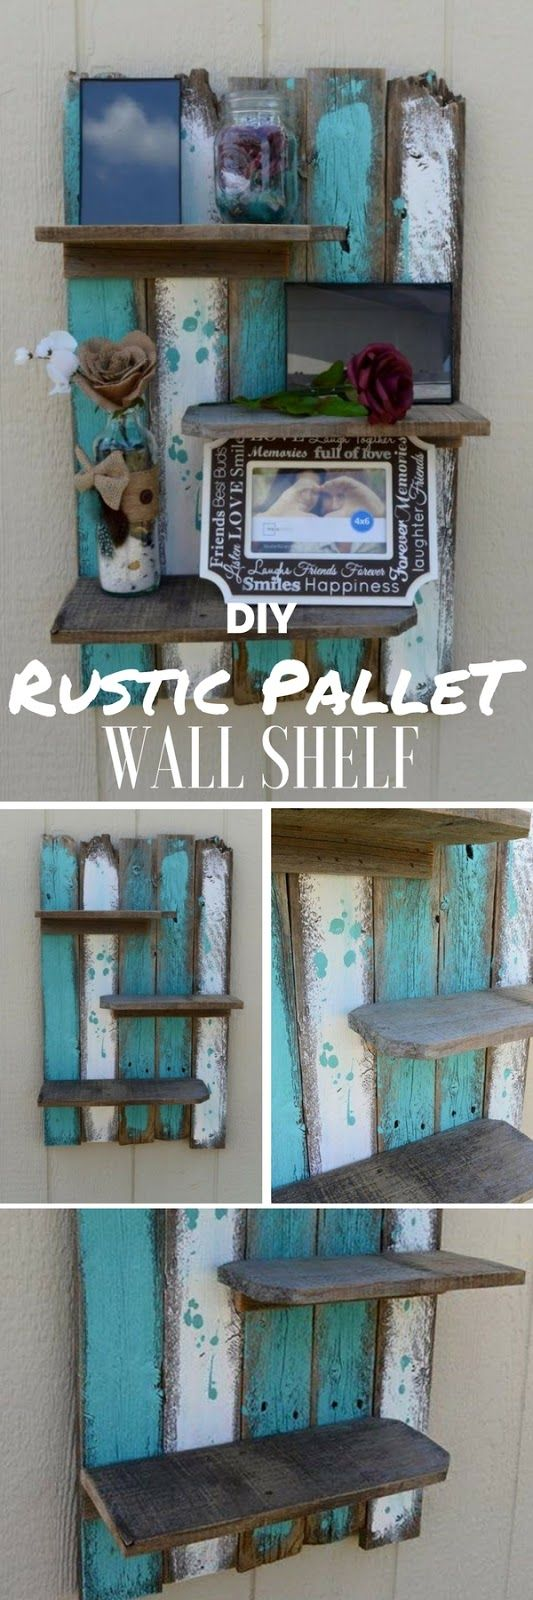 10 Insanely Genius DIY Home Decor Hacks You Have To Try | Shop ...